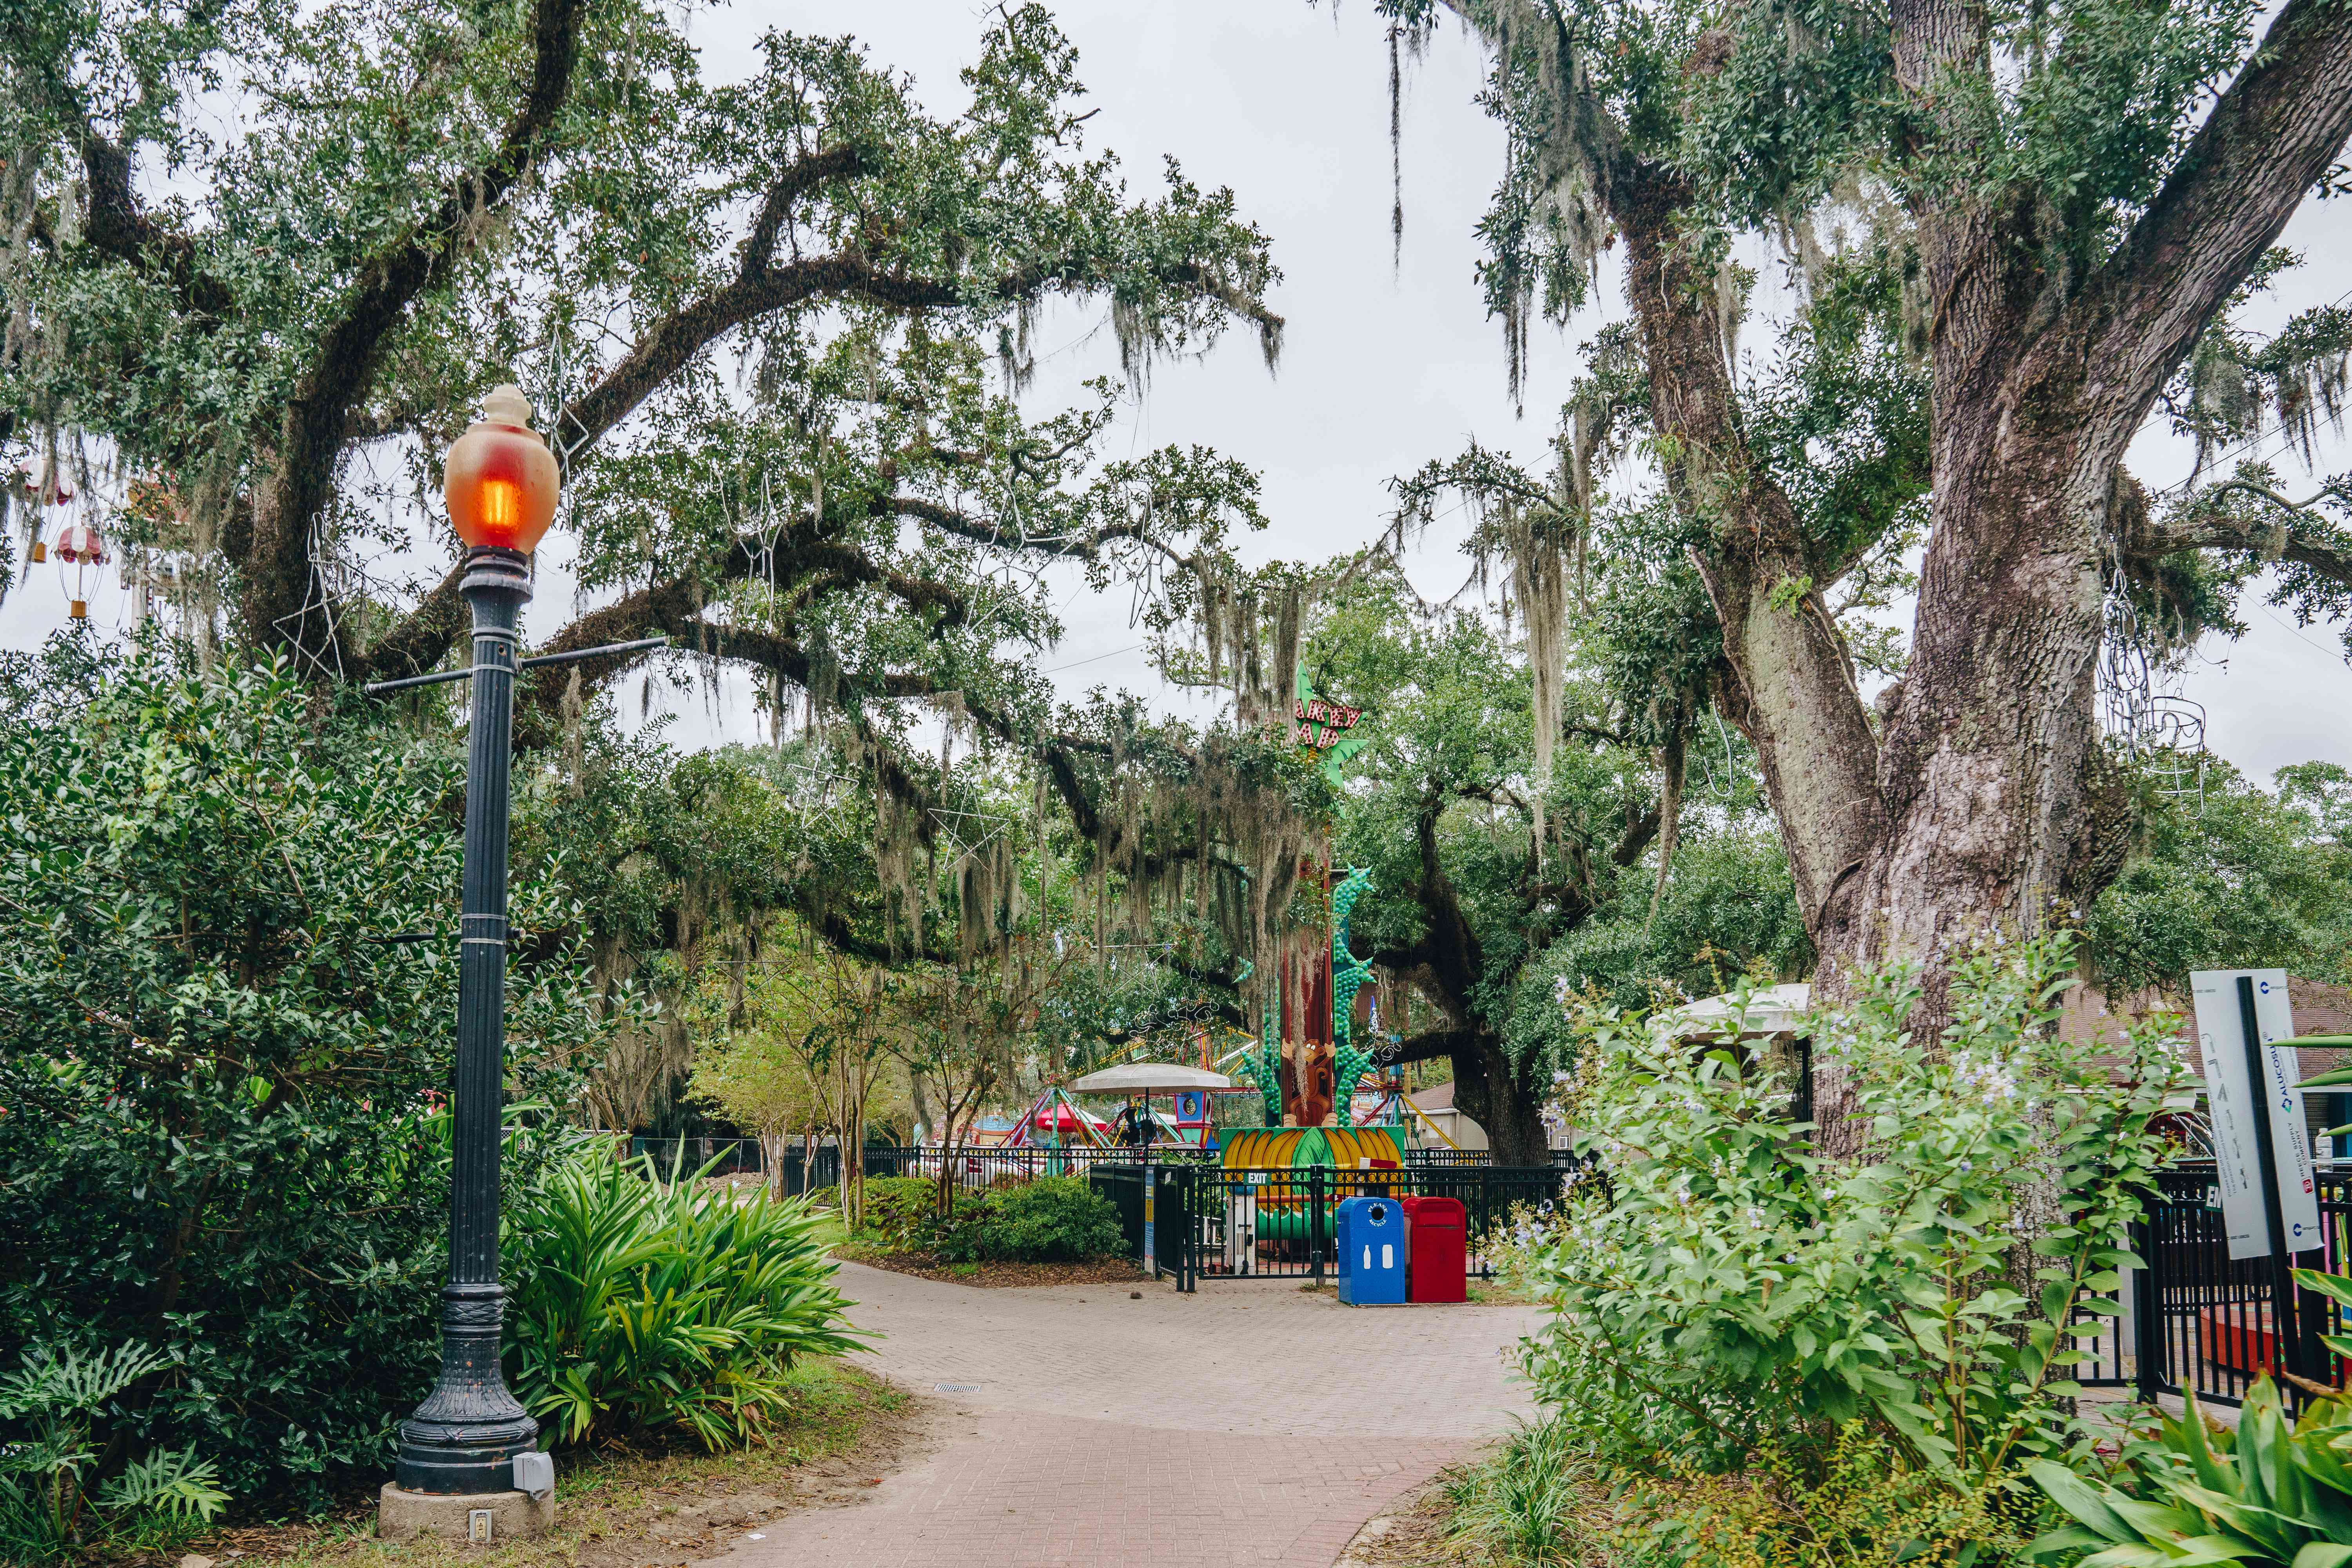 a walkway leading up to rides at the Carousel Gardens Amusement Park